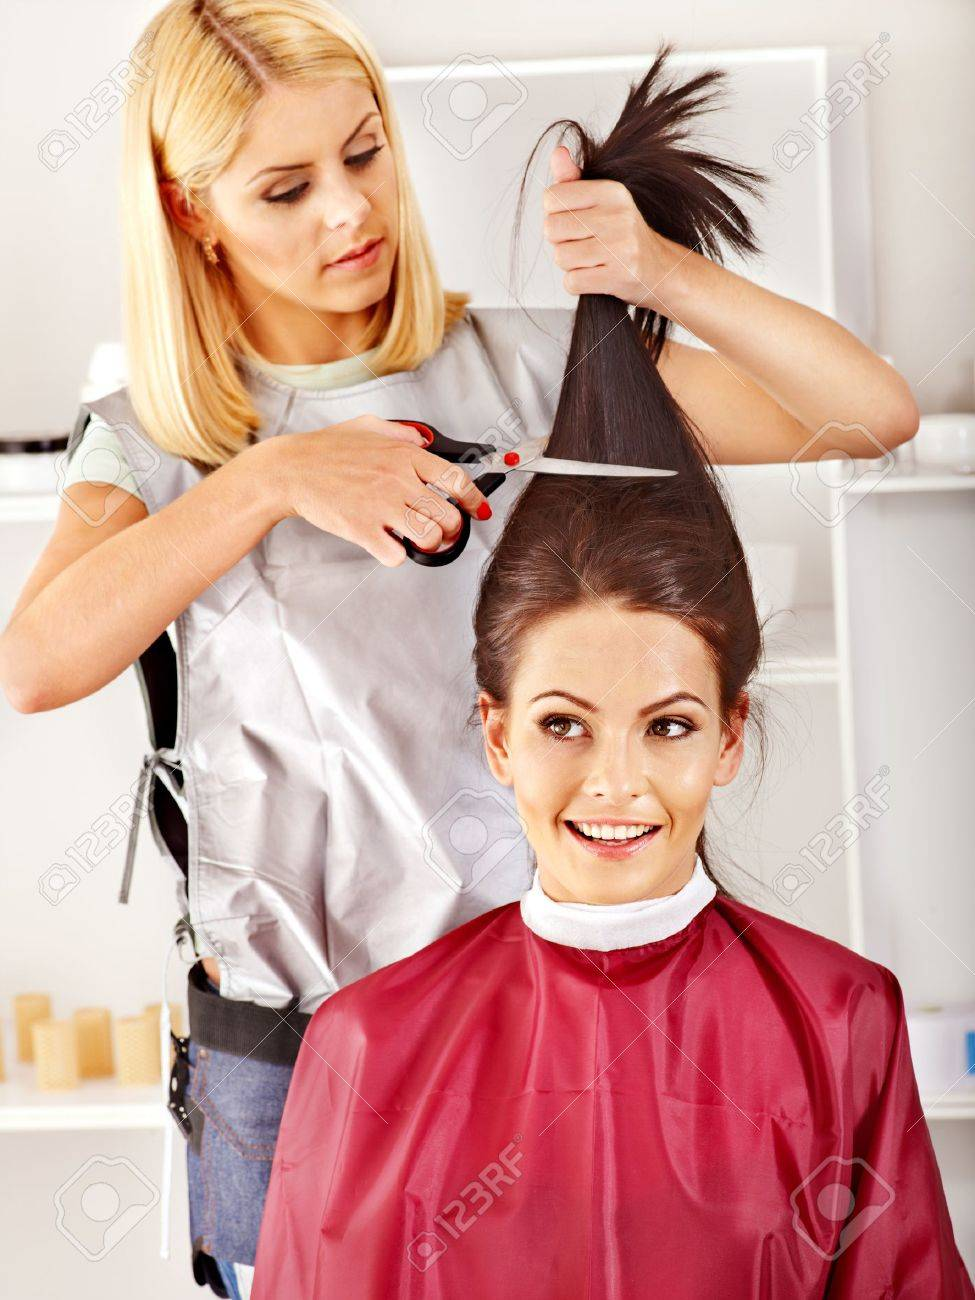 Woman at hairdresser with iron hair curler. Stock Photo - 17967327